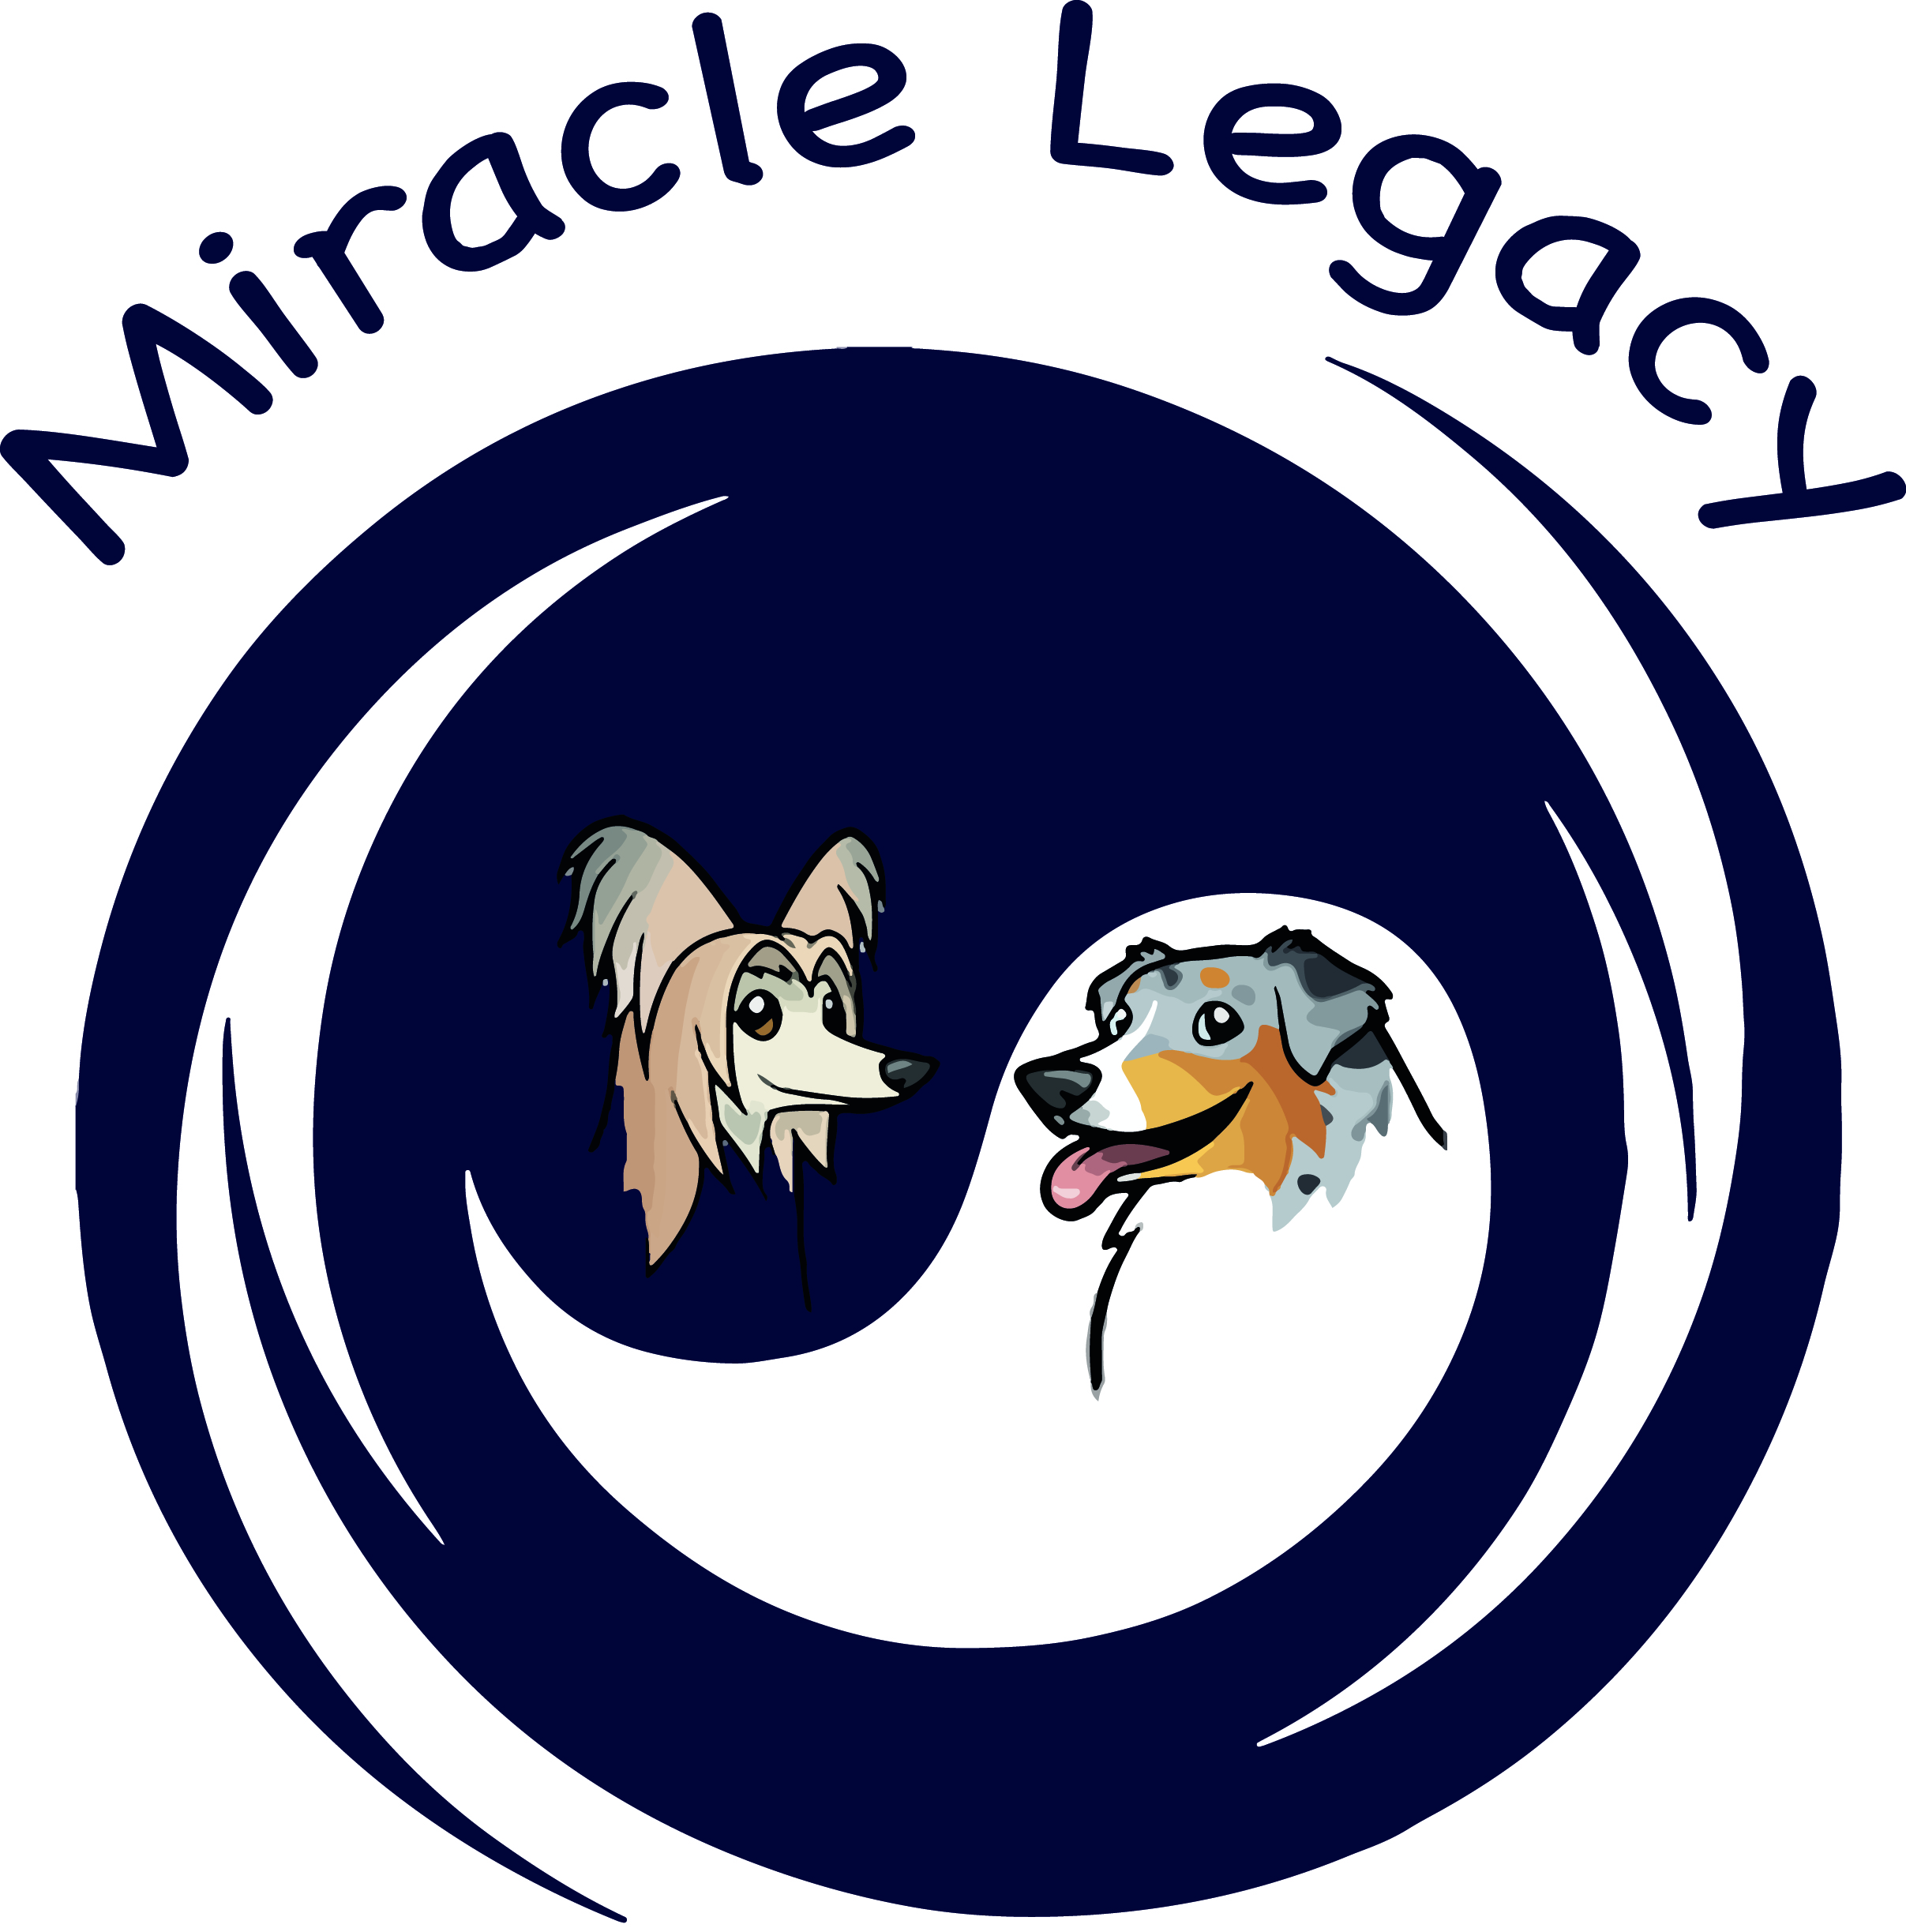 Of Miracle Legacy